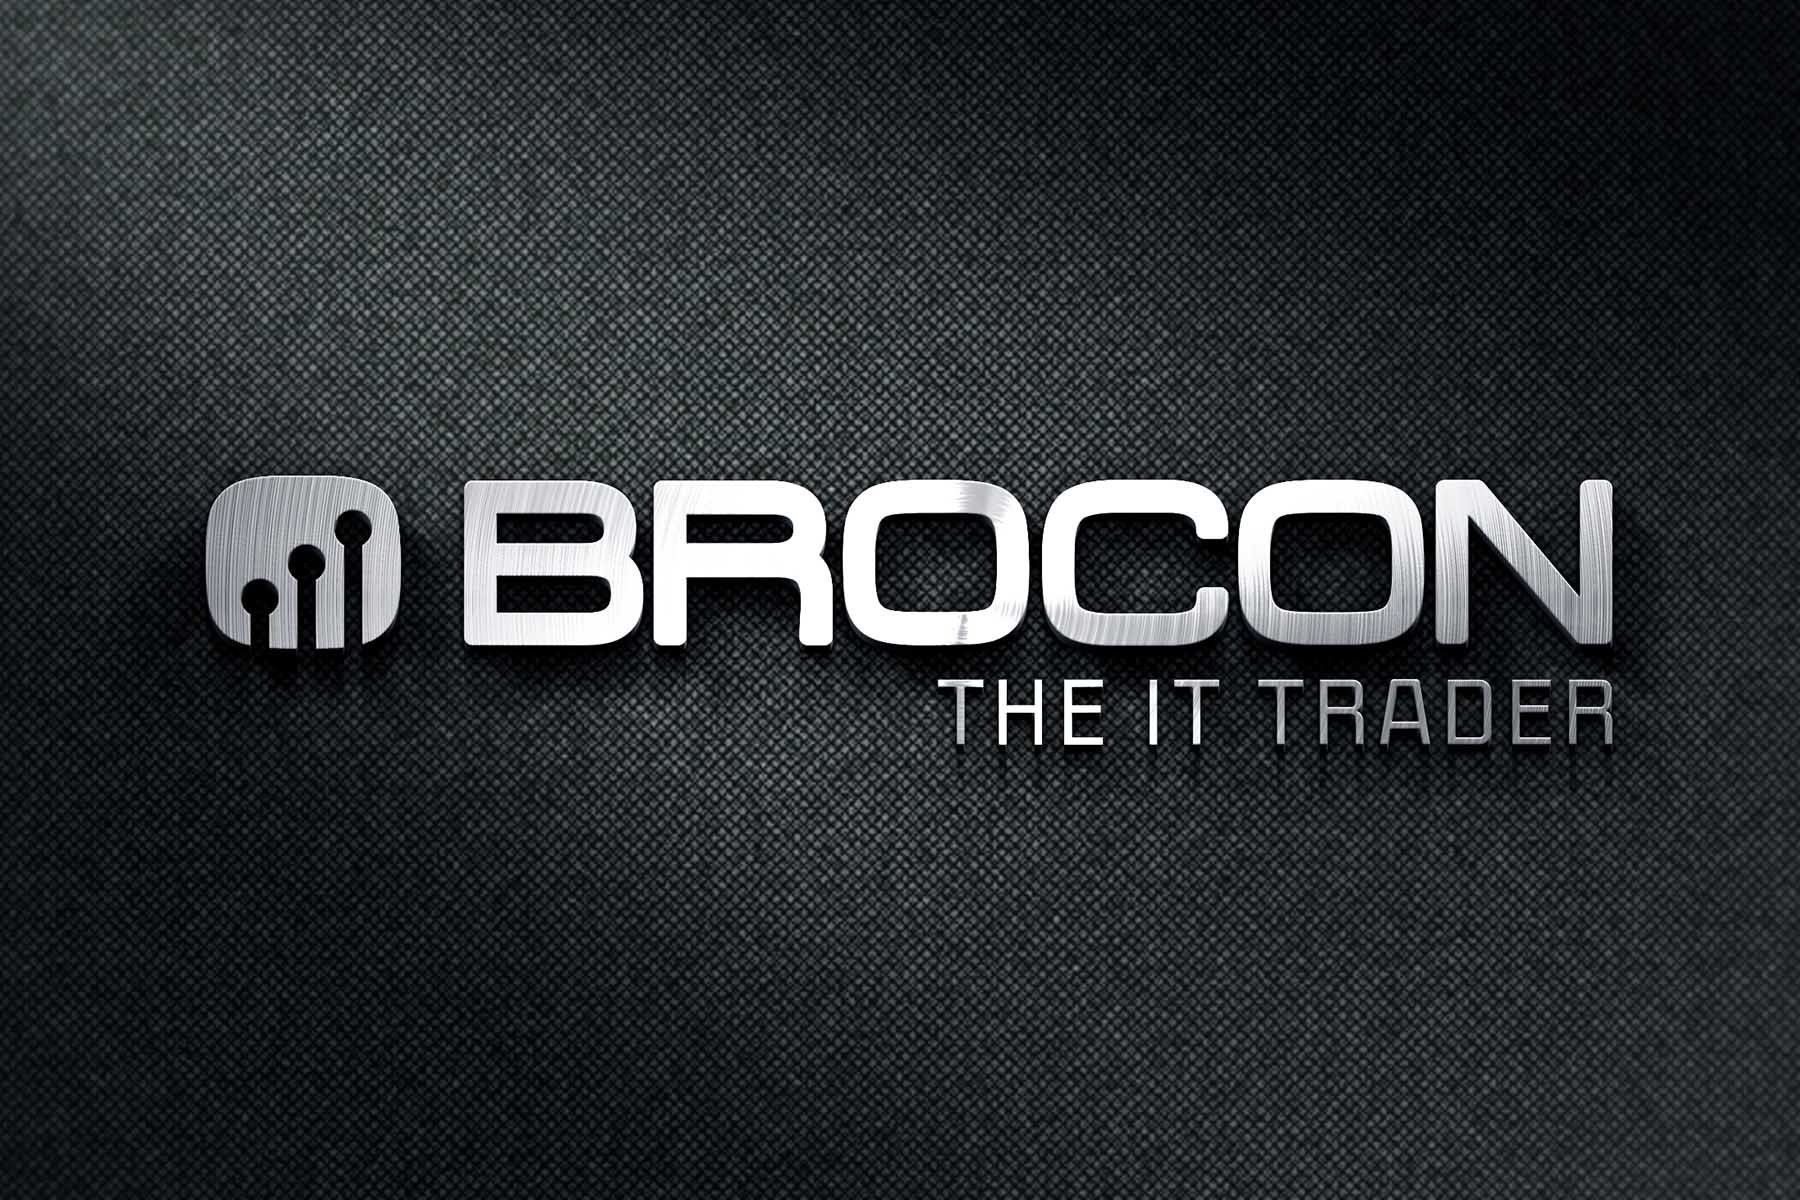 eh_referenzen_bro_1 Projekt - Brocon it